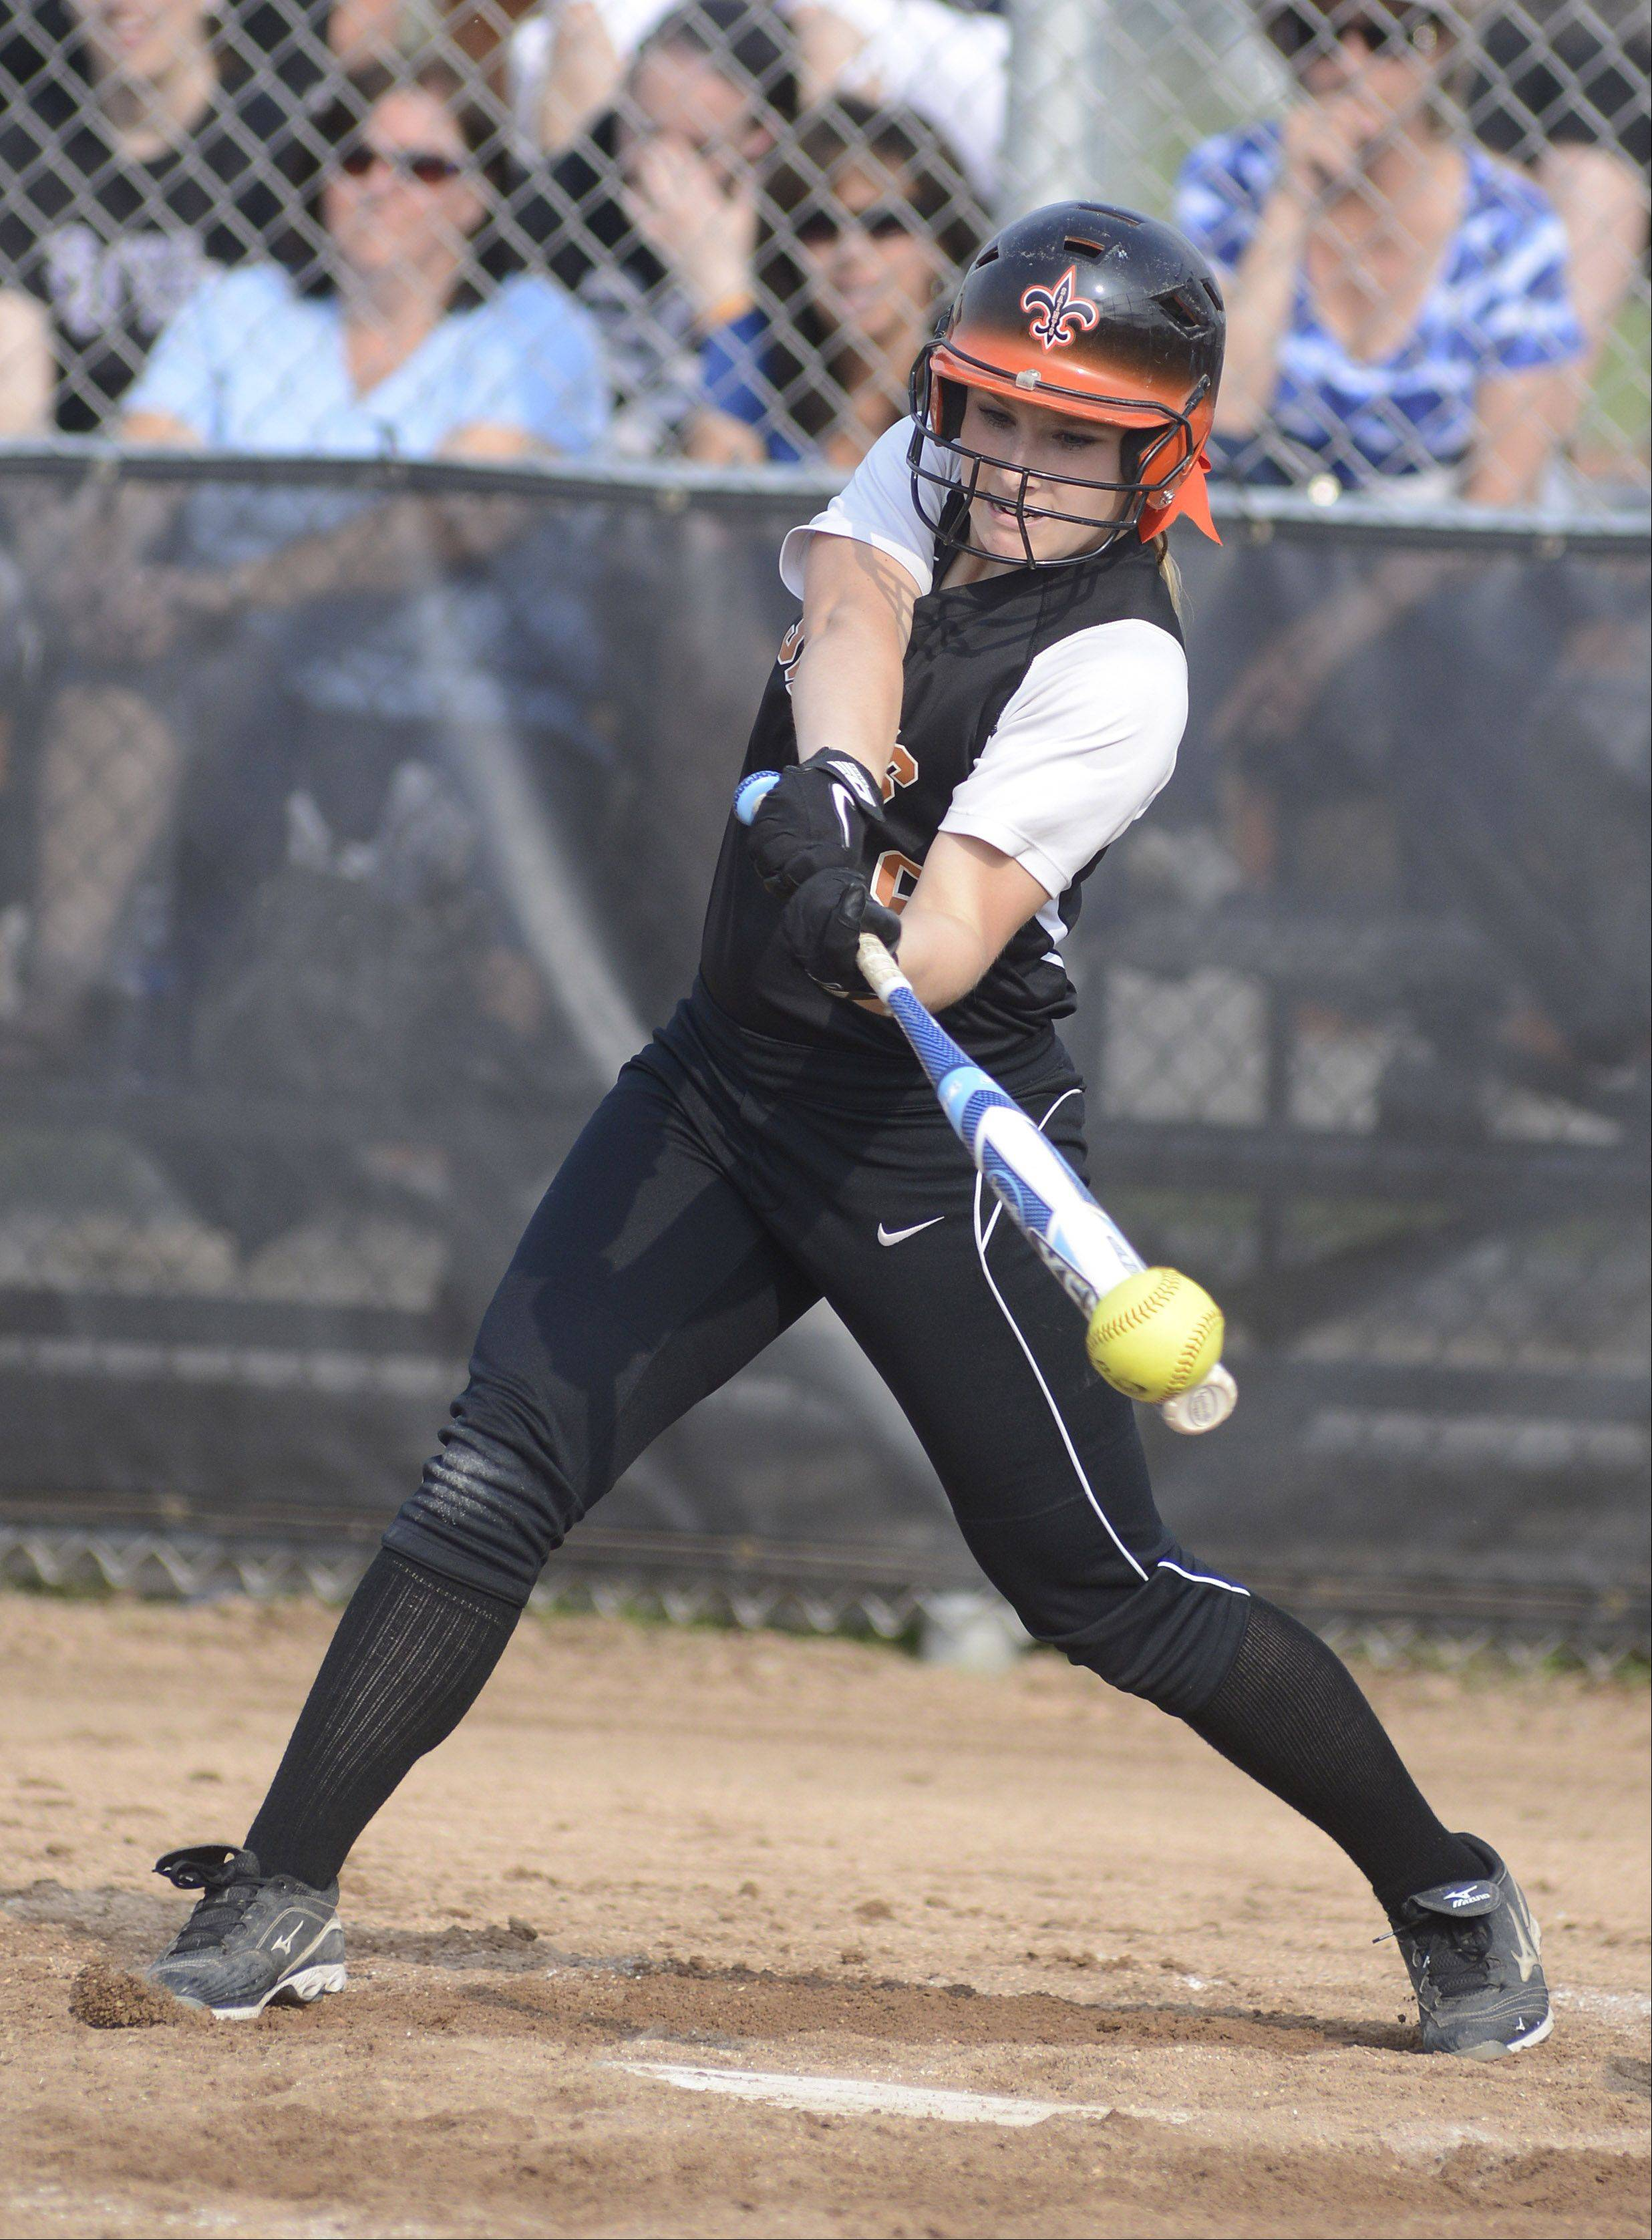 St. Charles East's Sarah Collaiti smacks the ball in the fifth inning of the Class 4A sectional on Tuesday.